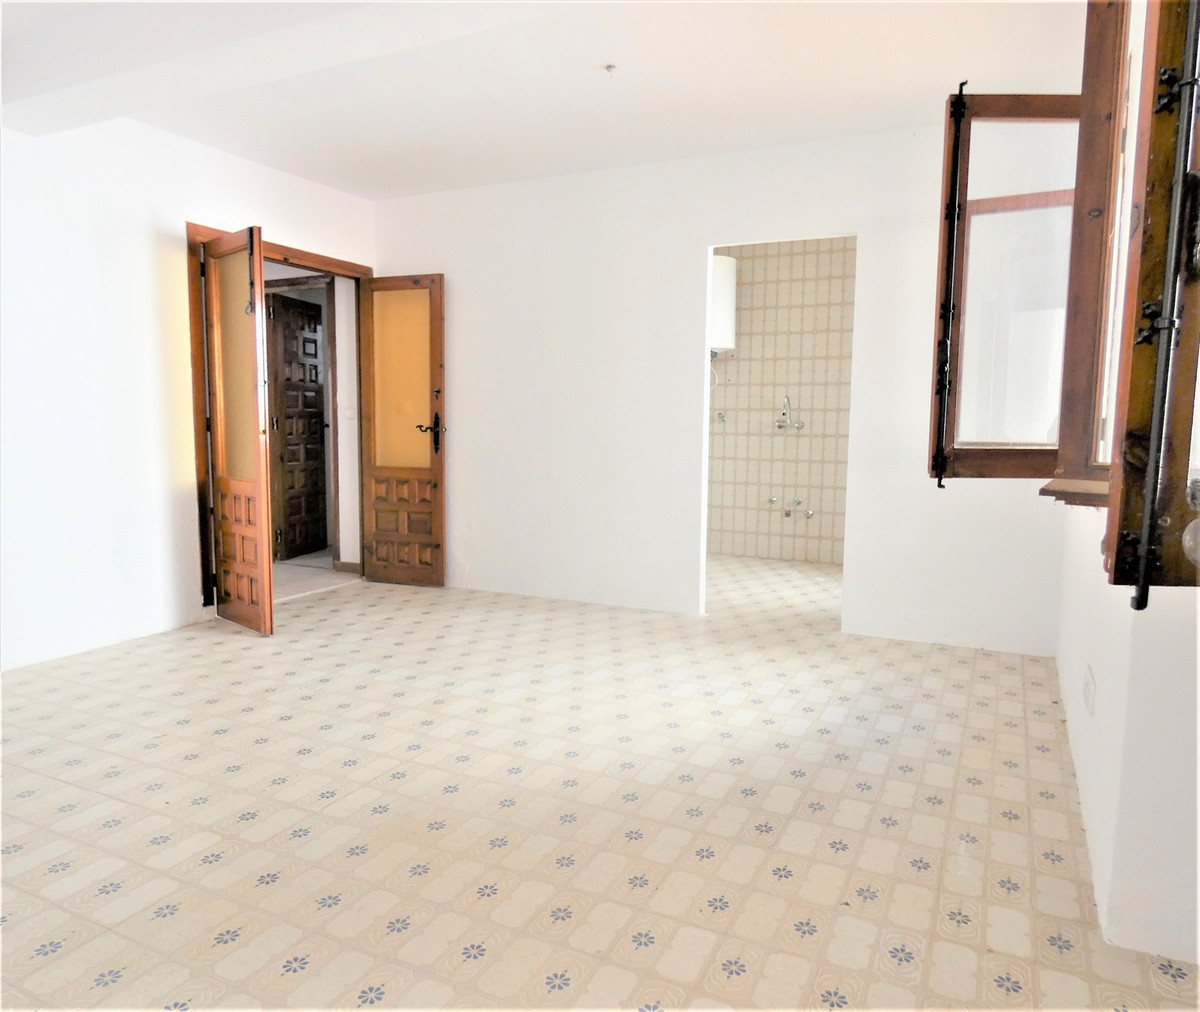 Rustic apartment on the ground floor a few minutes from the beach by car and in a very quiet and And, Spain